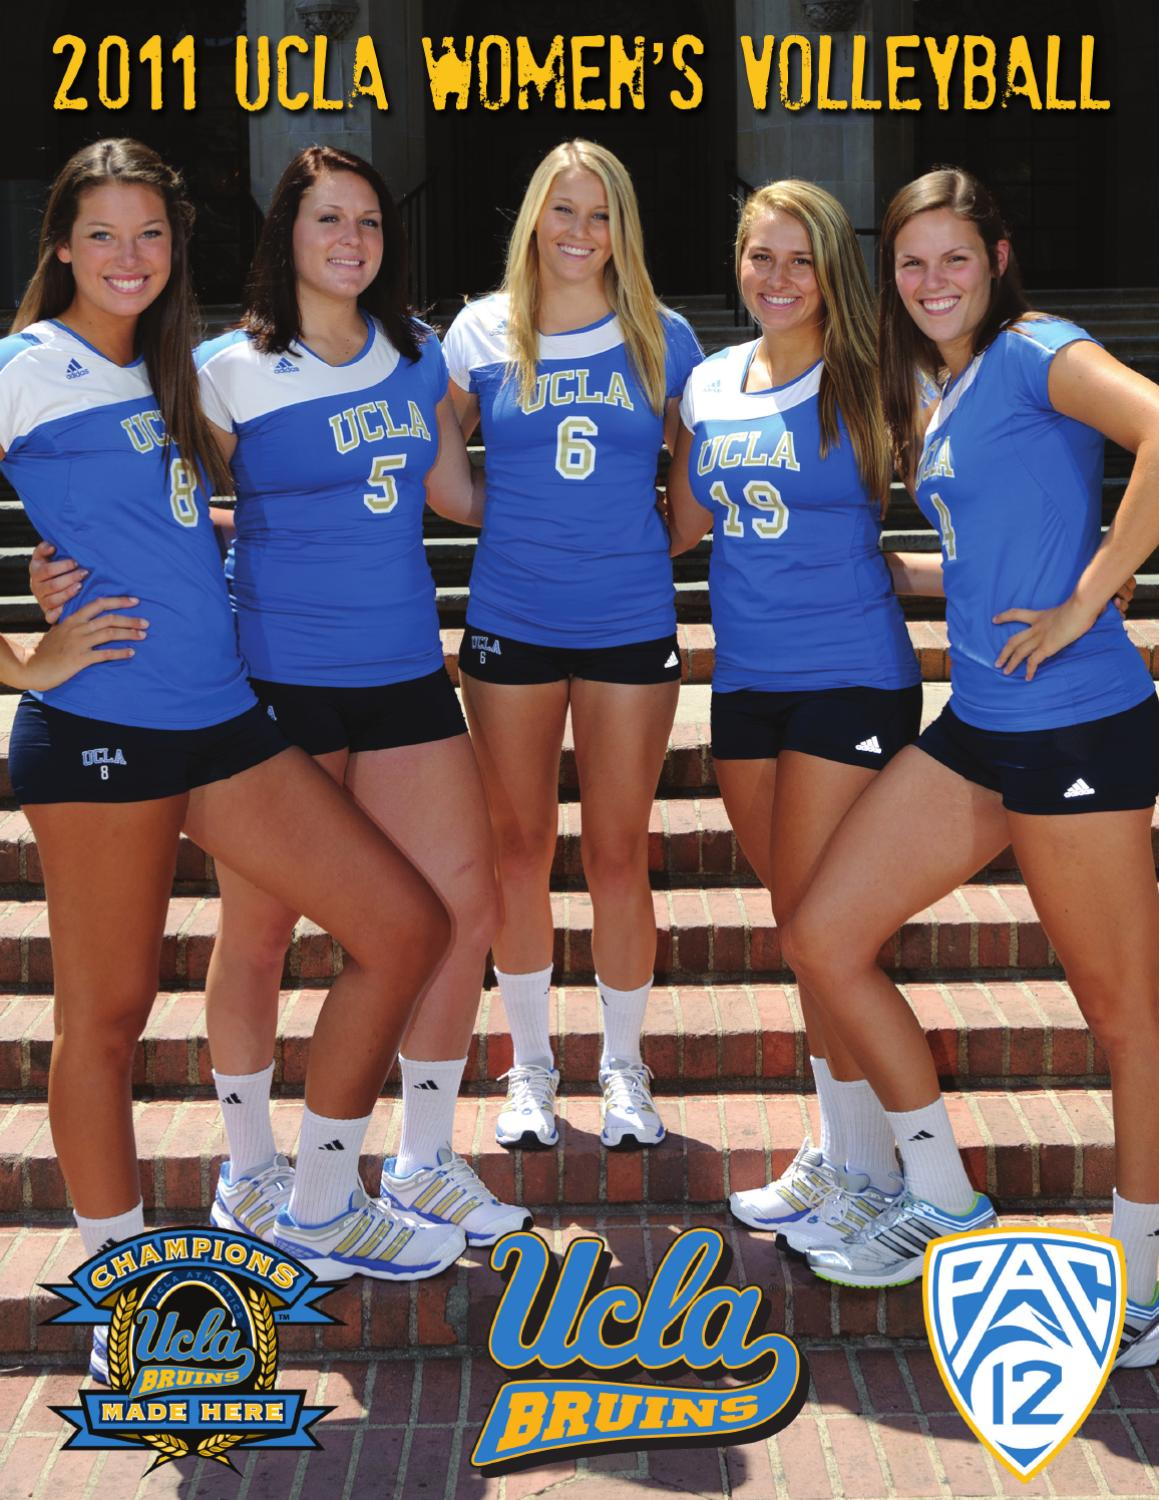 2011 Ucla Women S Volleyball Media Guide By Ucla Athletics Issuu